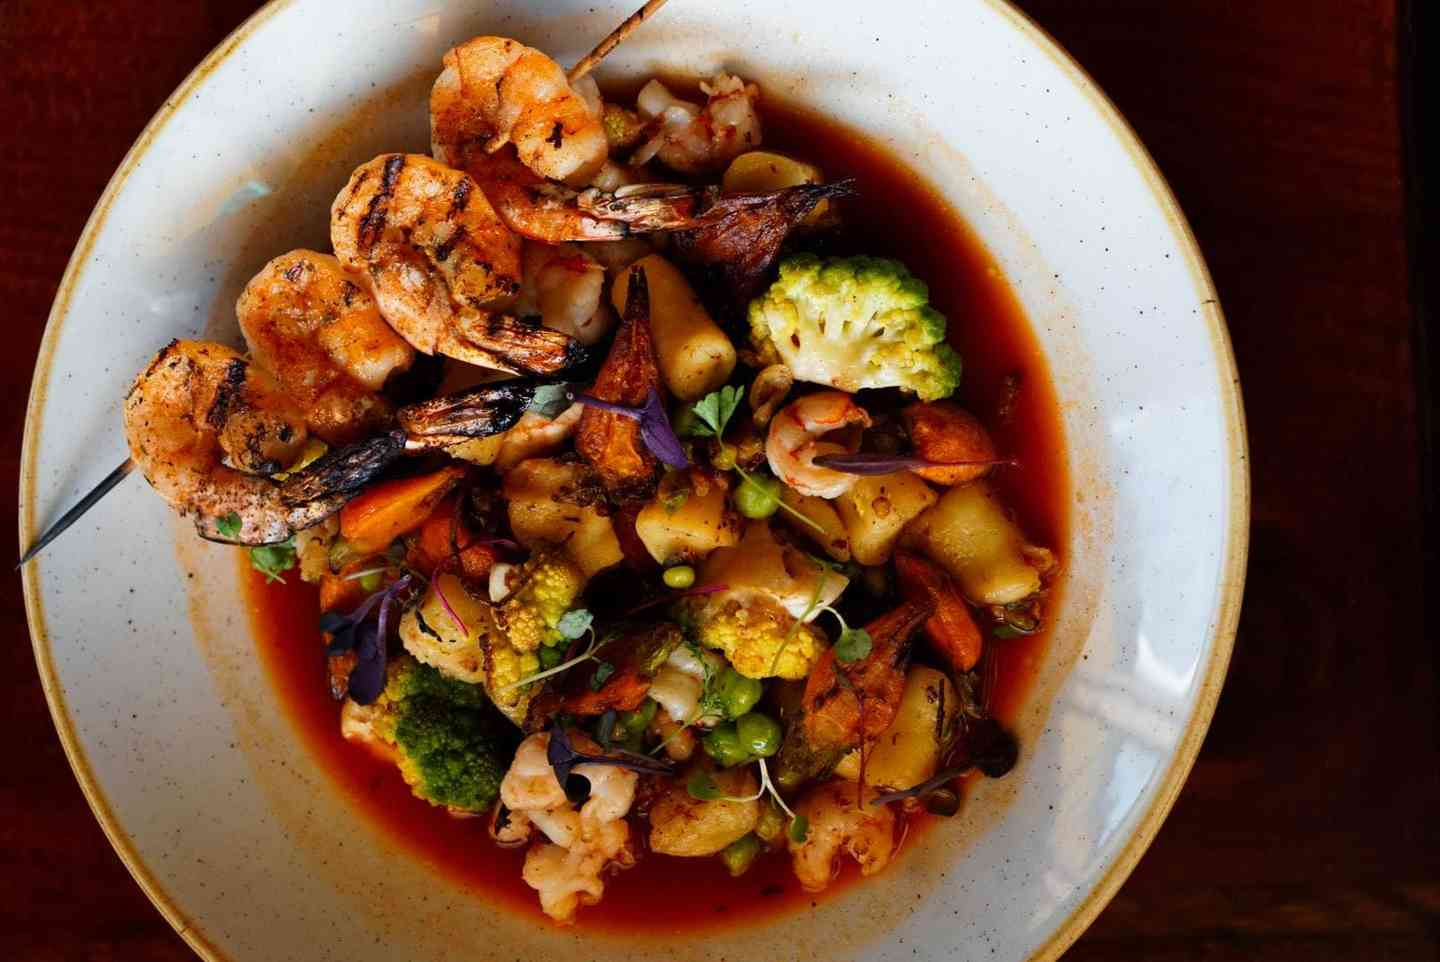 shrimp and vegetable dish